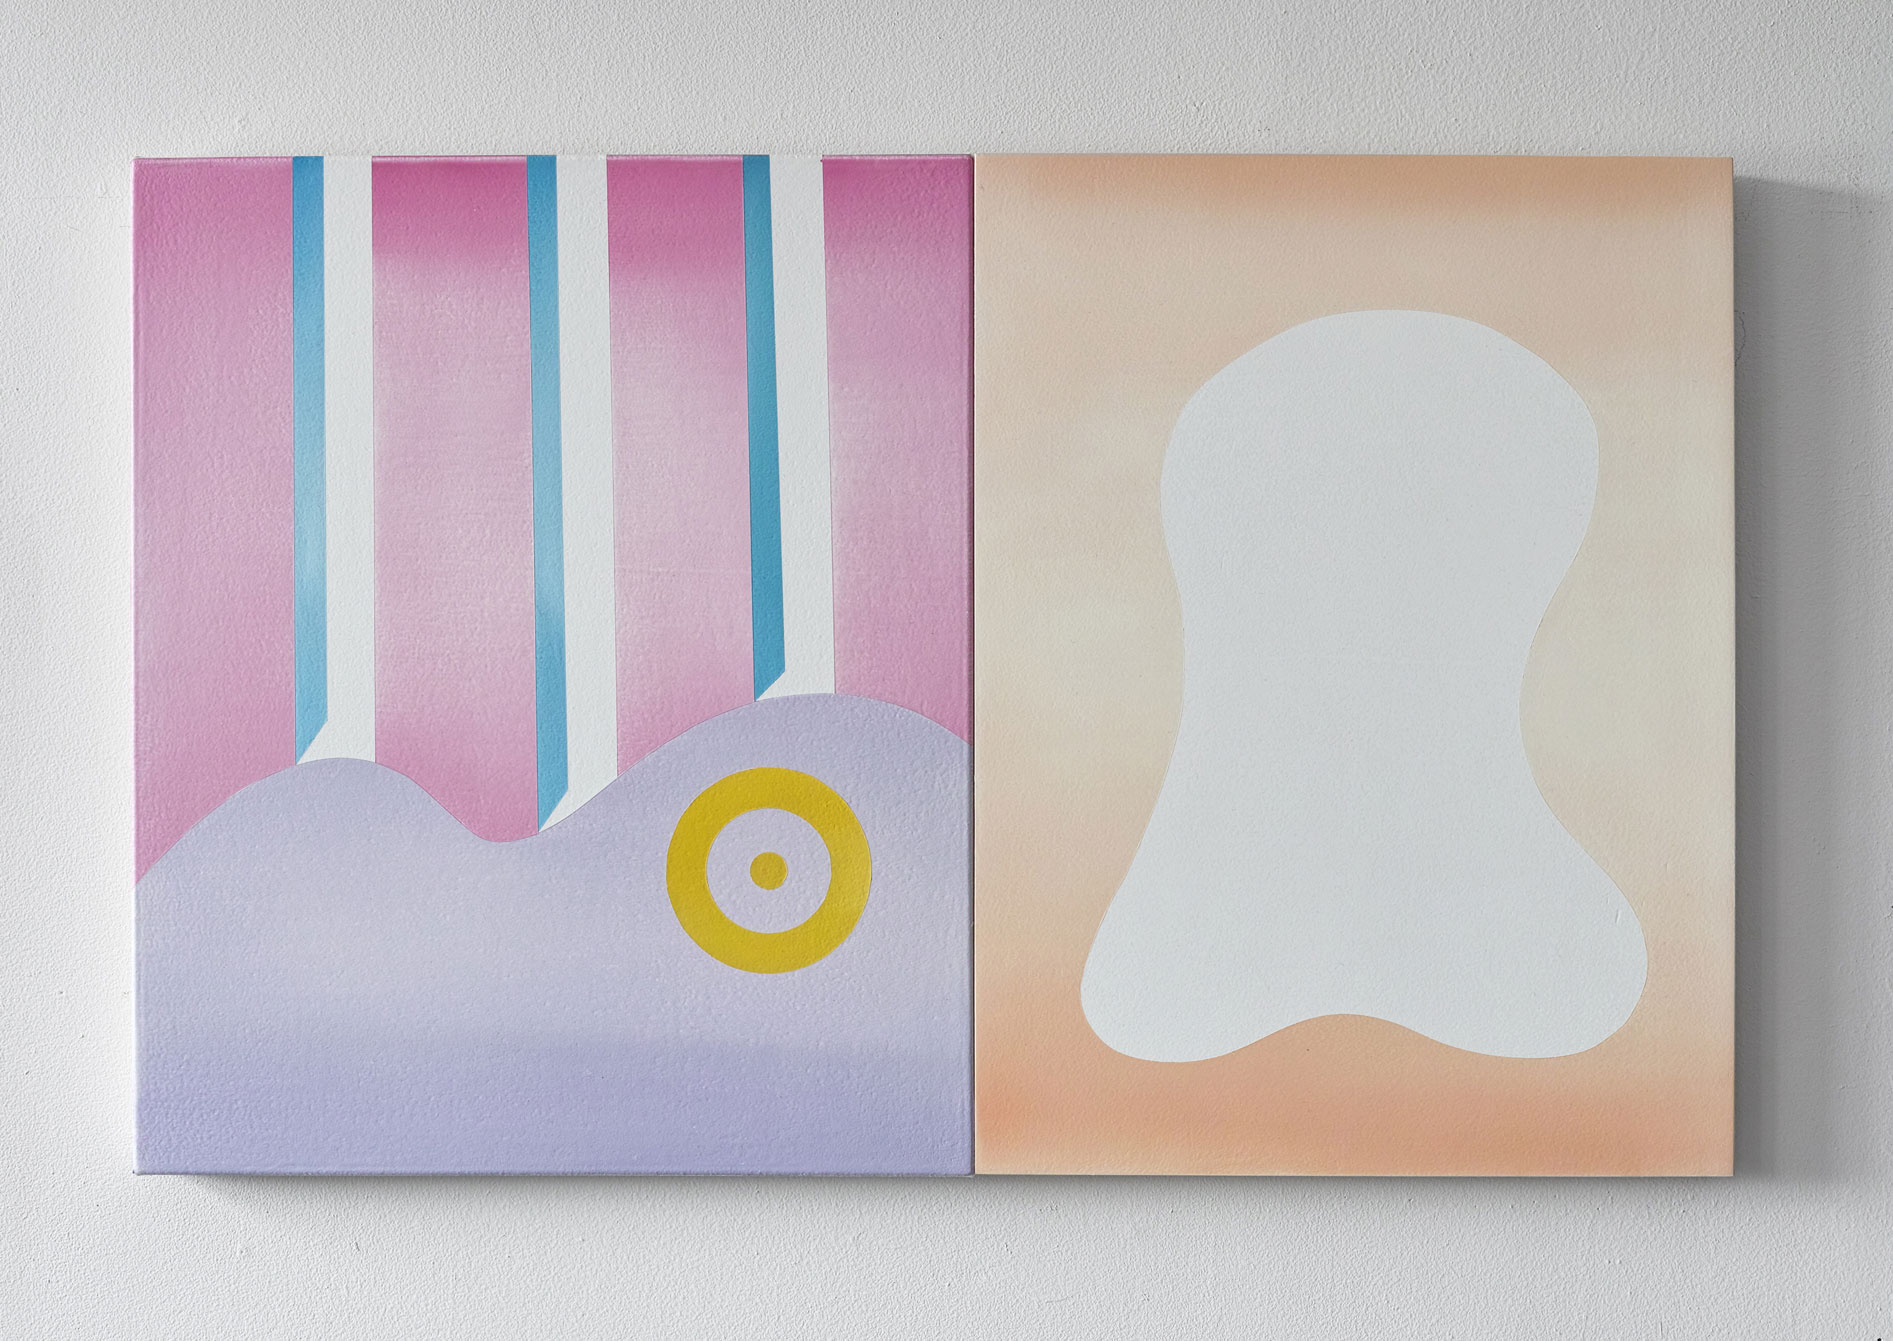 gregory c. brunet // sexuality // oil on canvas // 60.96cm x 106.68cm // 2015